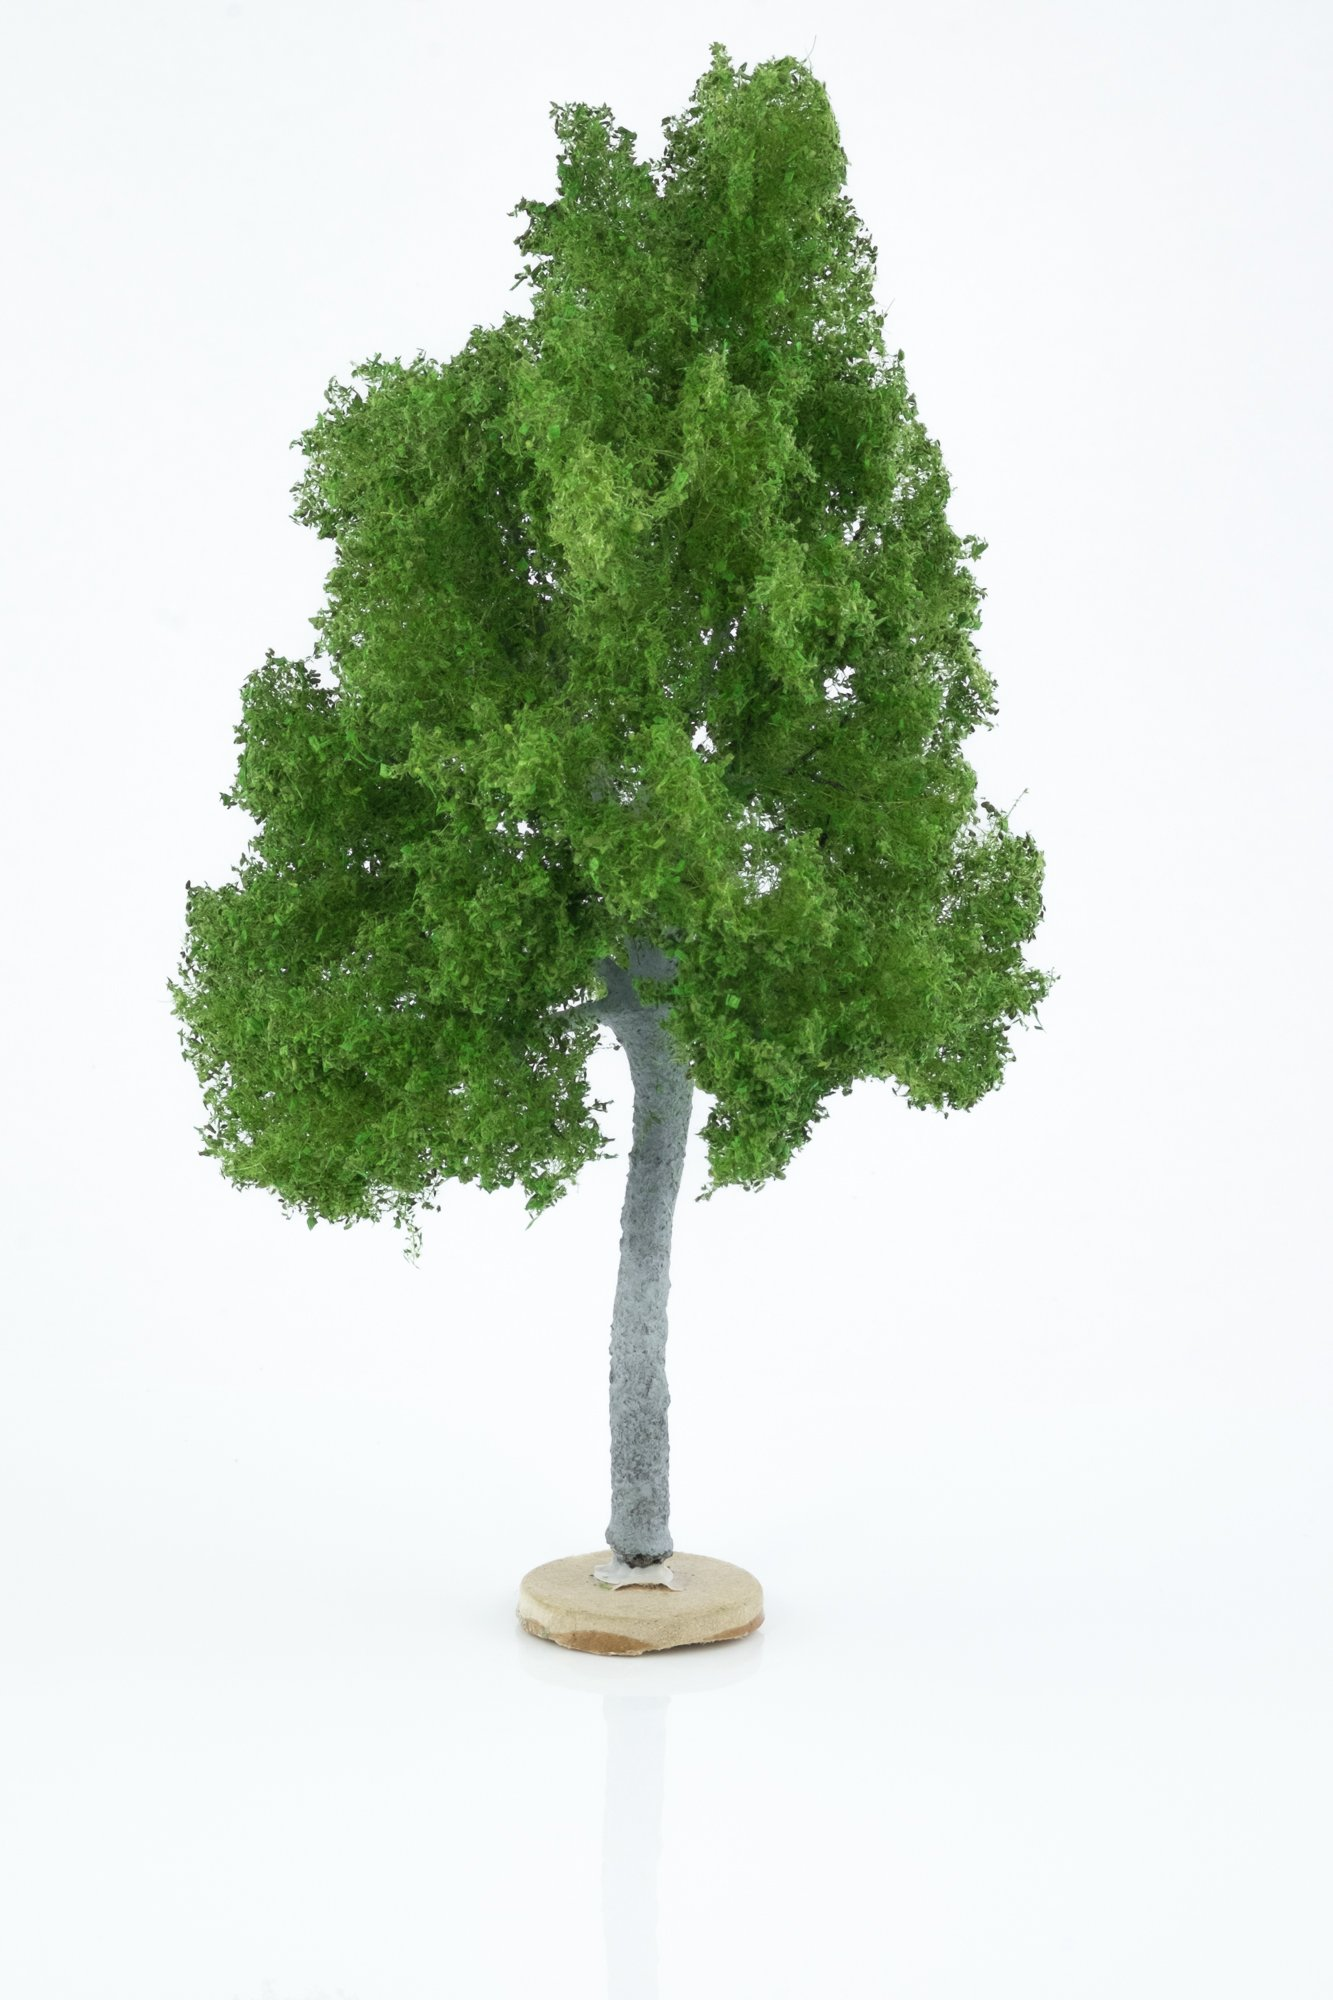 Hand-made, green, maple tree model. Size between 18 and 20 cm. Made from high quality model supplies by Primo Models.